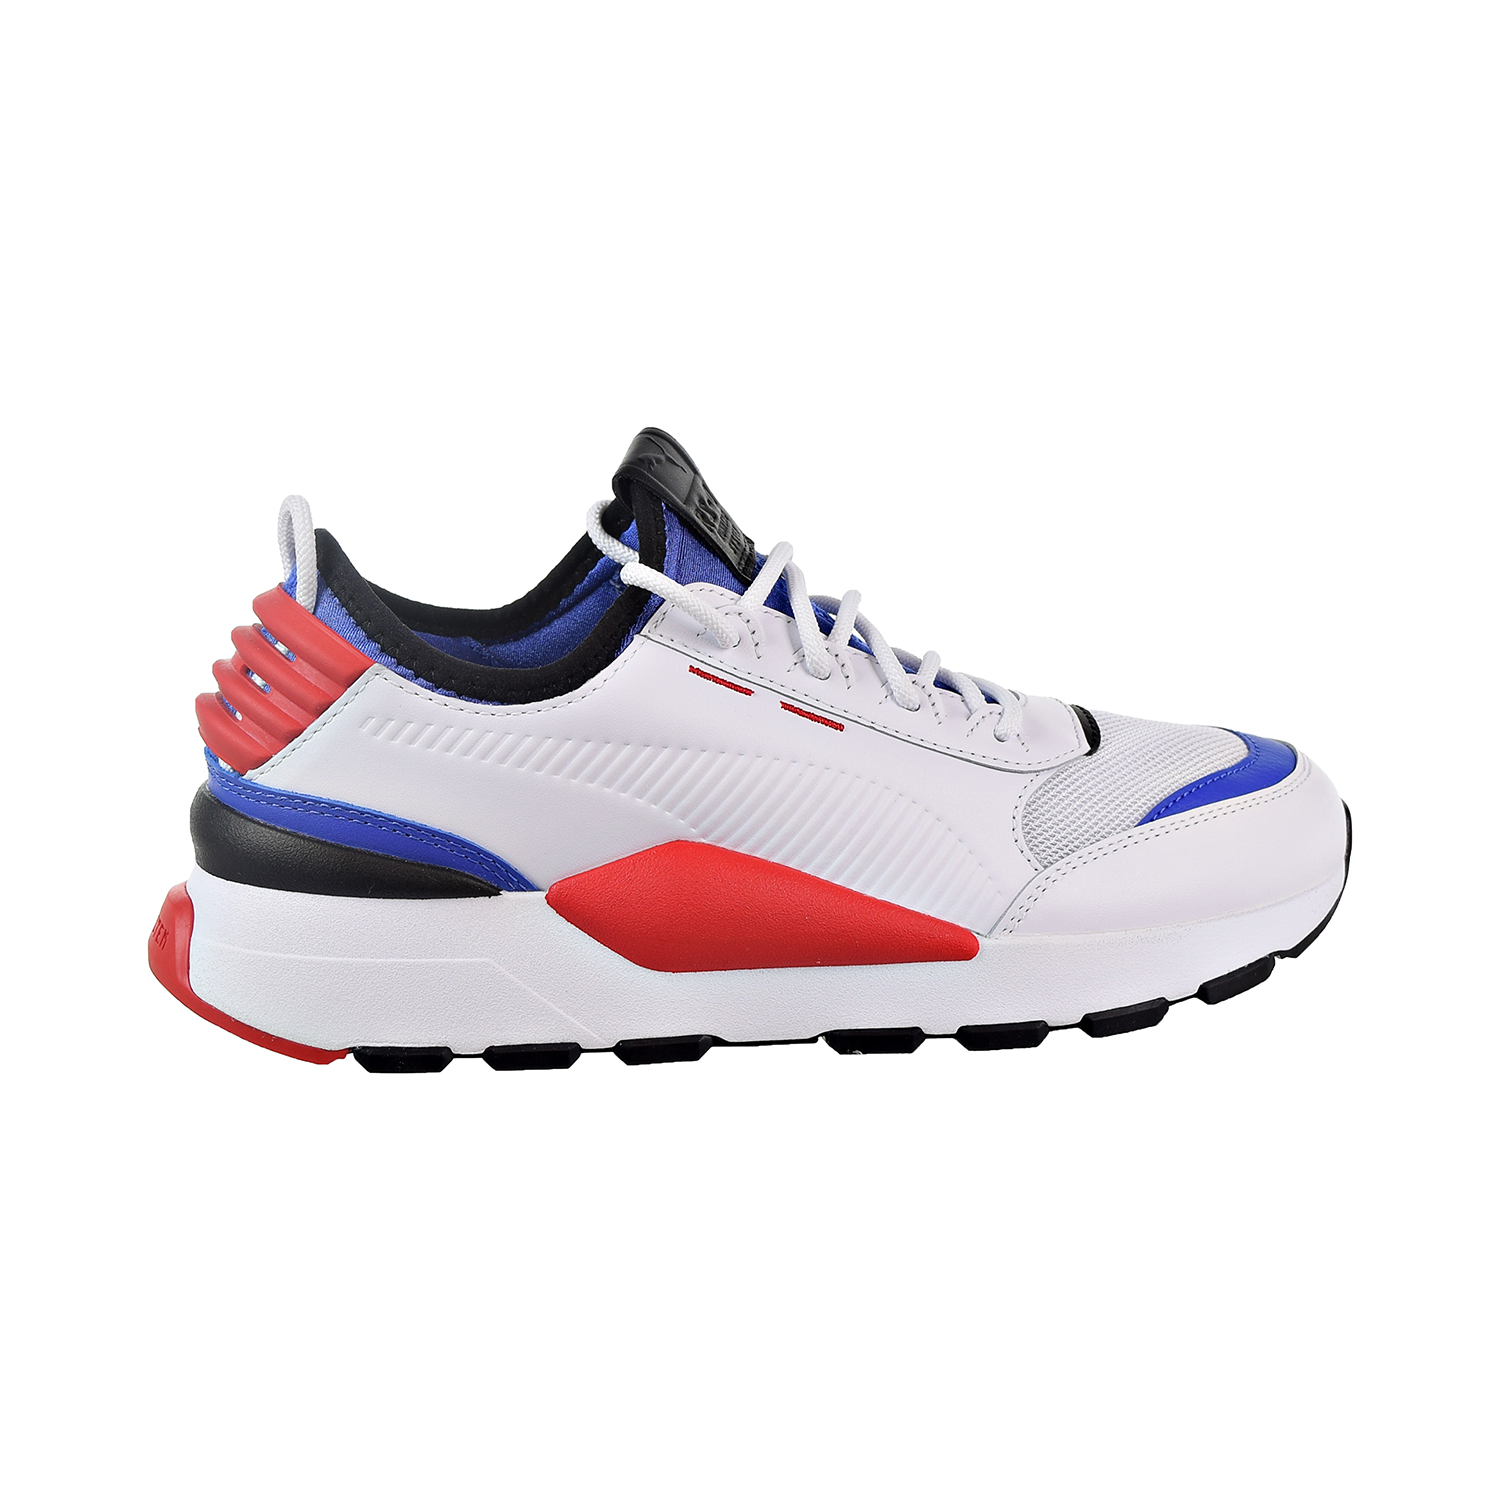 d7ddce70596f41 Details about Puma RS-0 Sound Men s Shoes White Dazz Blue High Risk Red  366890-01